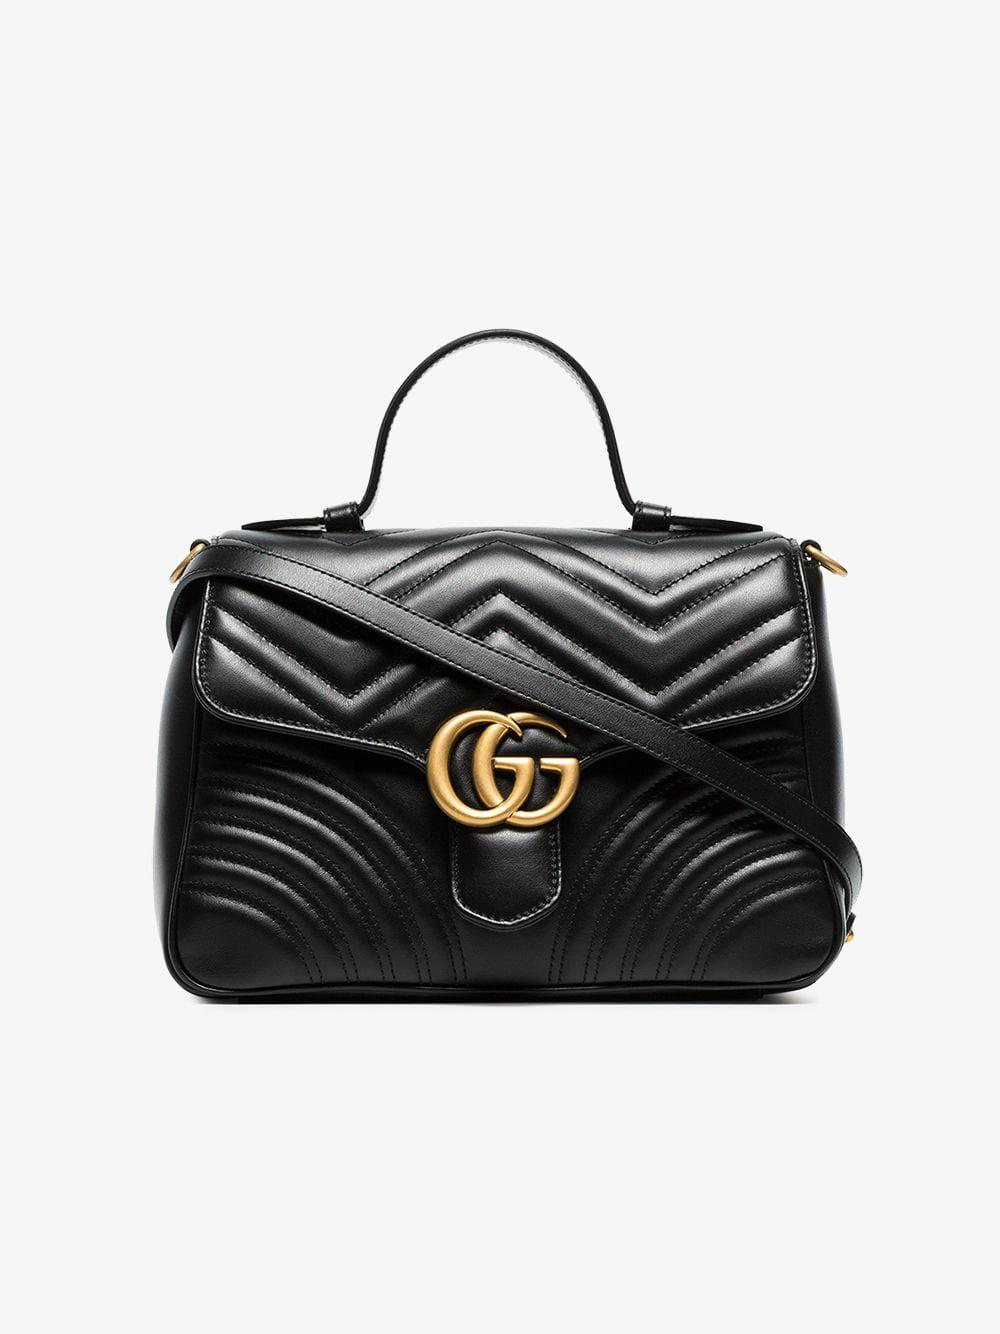 4eac5376038 Gucci Black GG Marmont Small Top Handle Bag in Black - Lyst